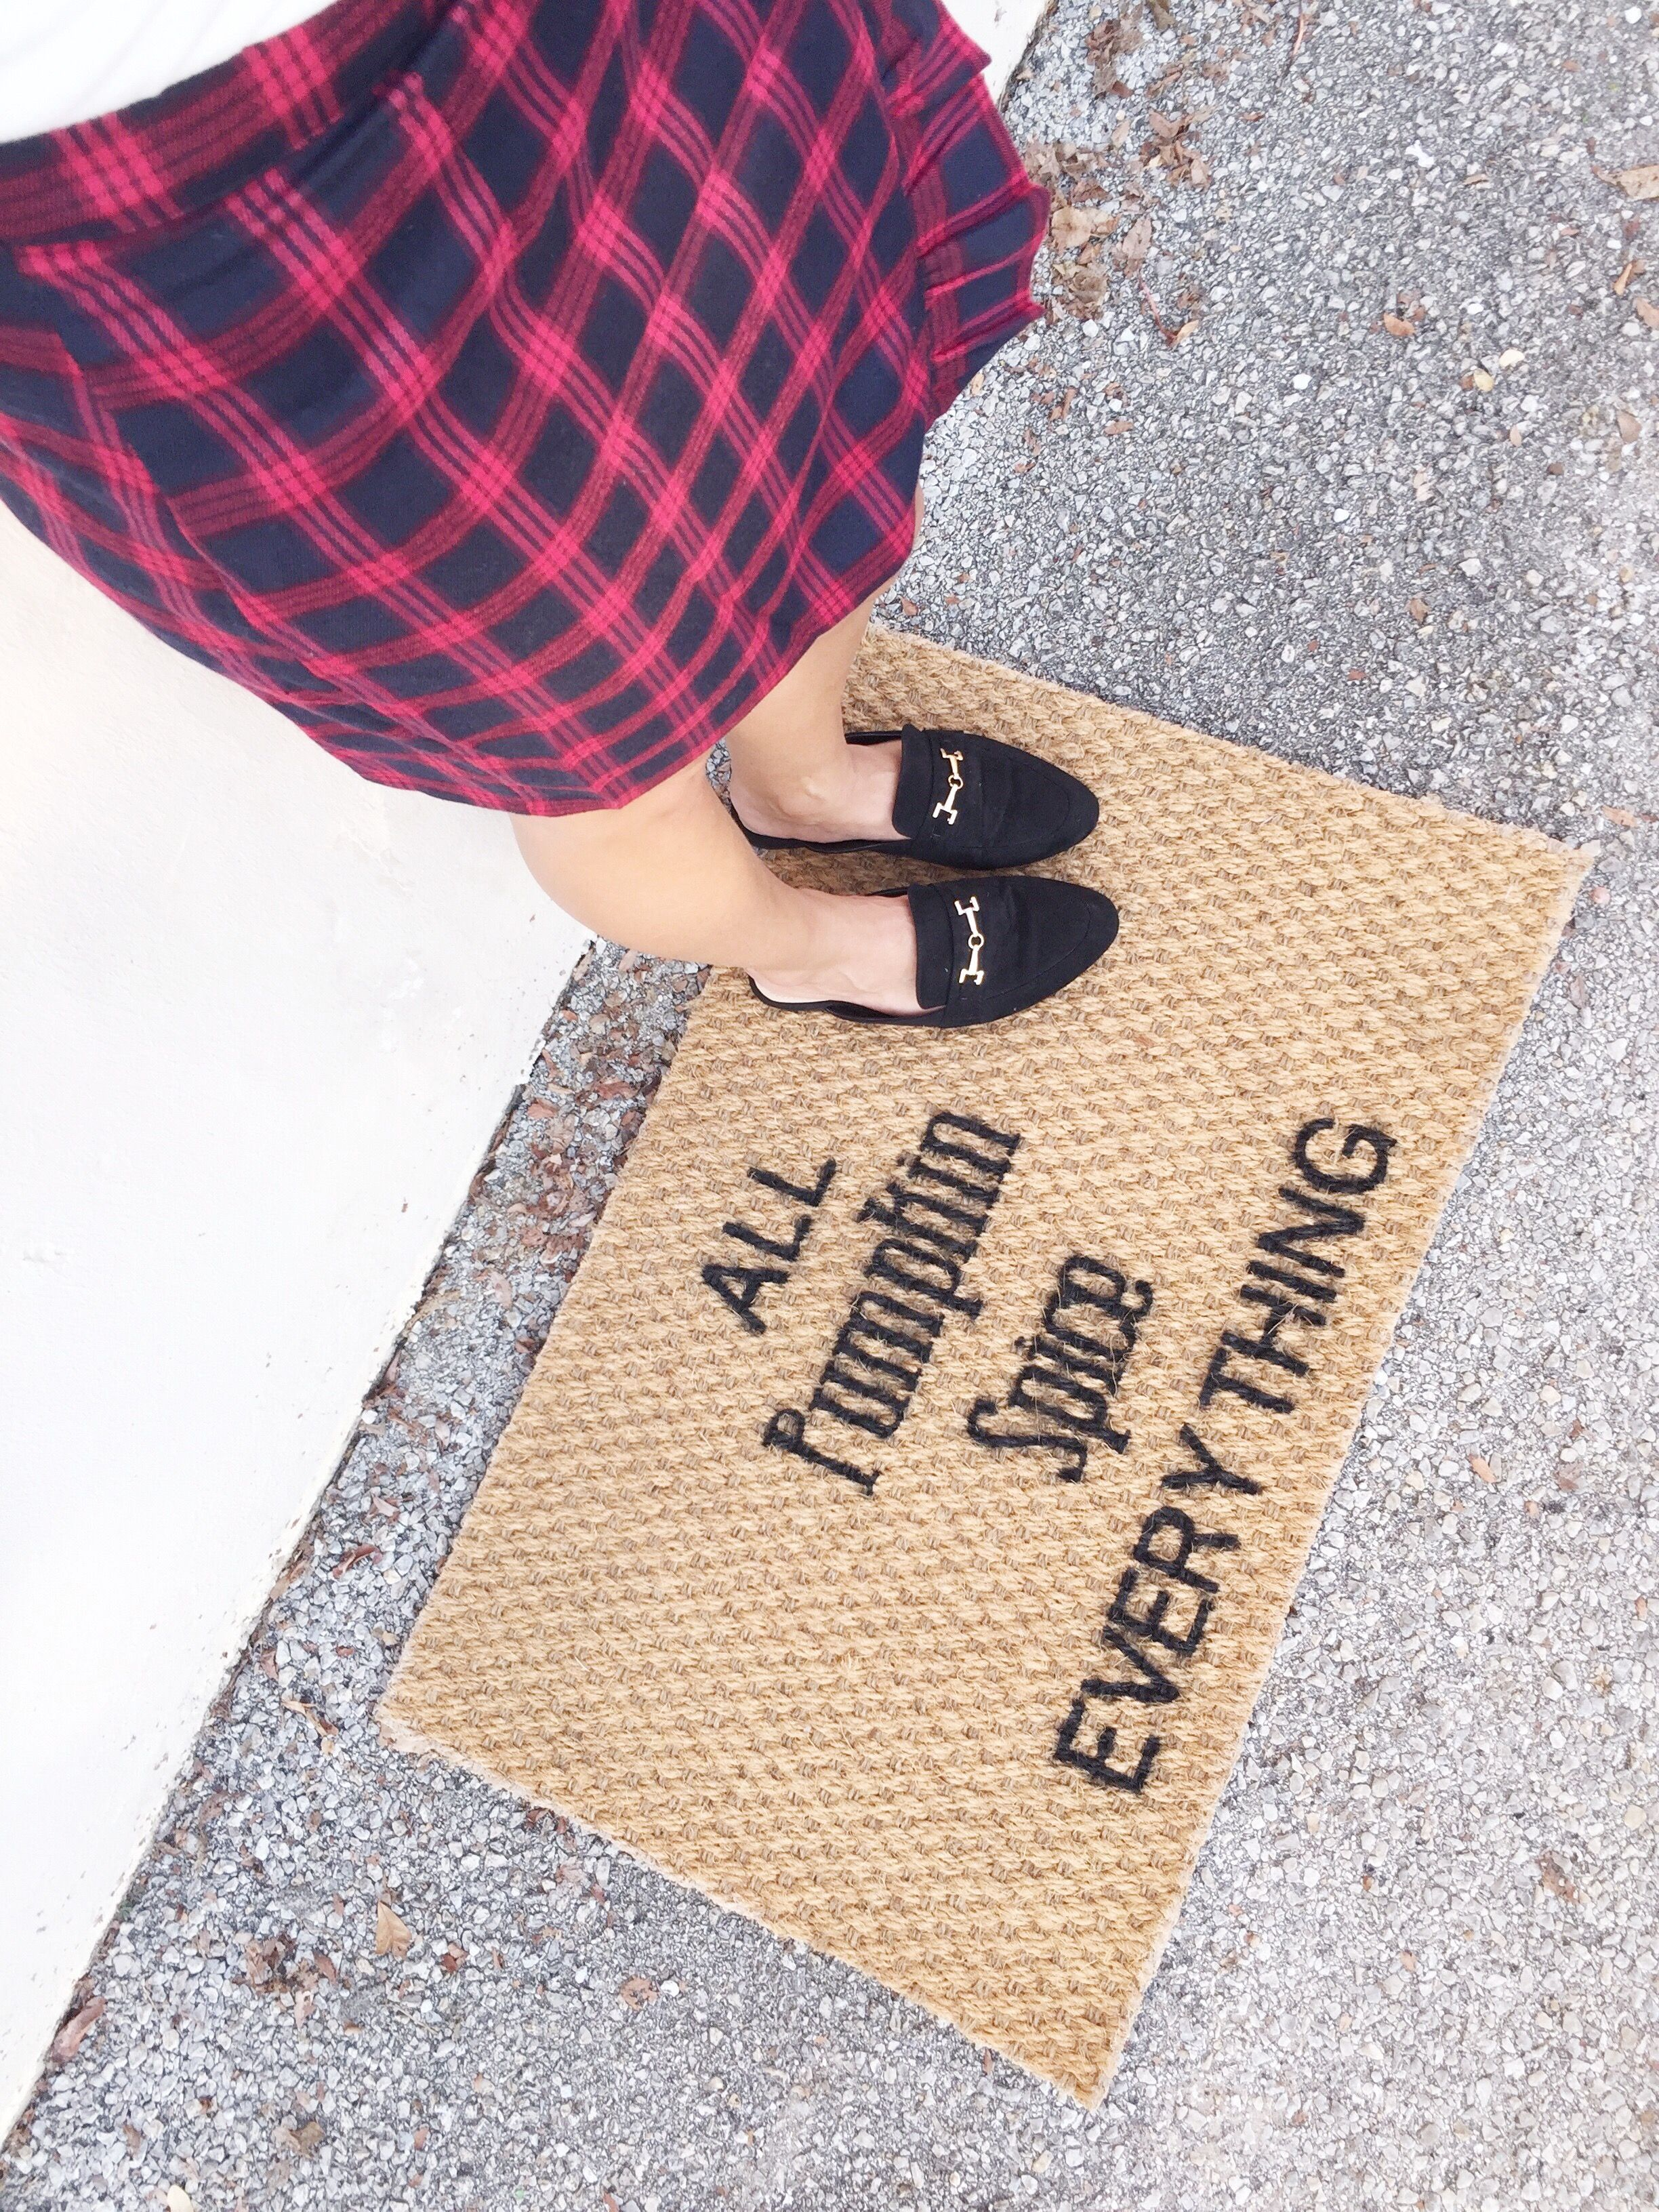 need accessories flooring funny doormats mats ideas front page door a doormat home amusing i cool